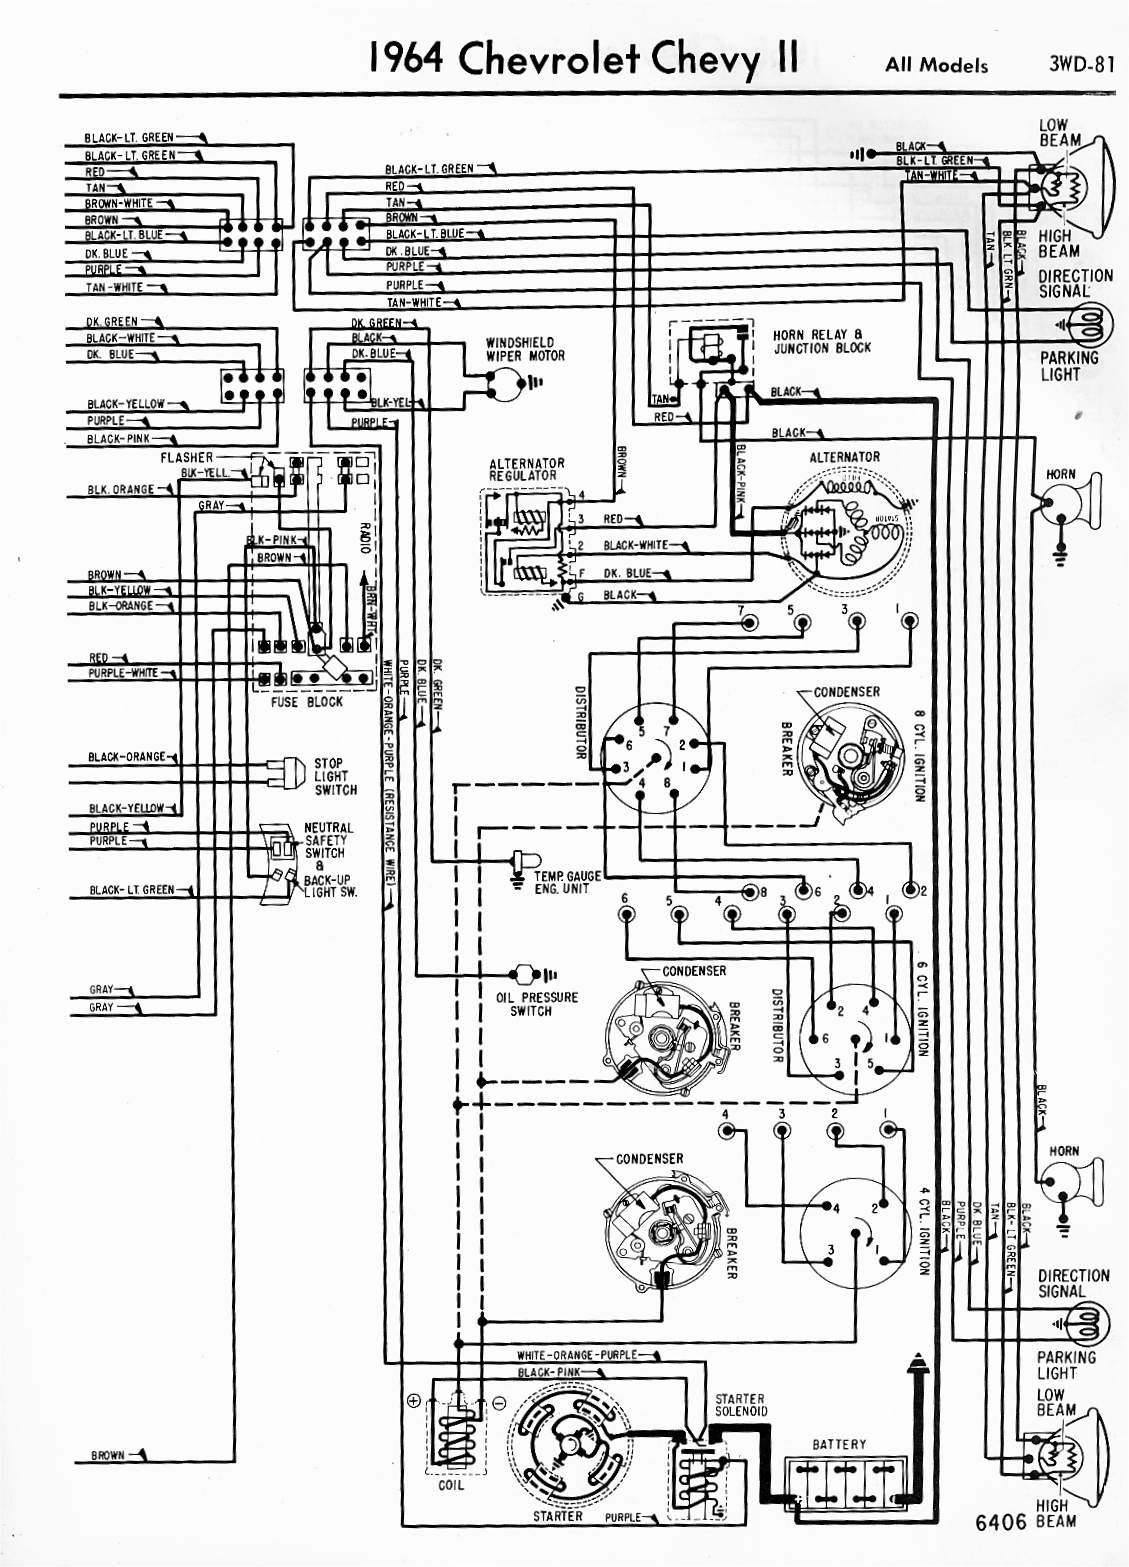 1967 C20 Wiring Harness - Car Wiring Diagrams Explained •